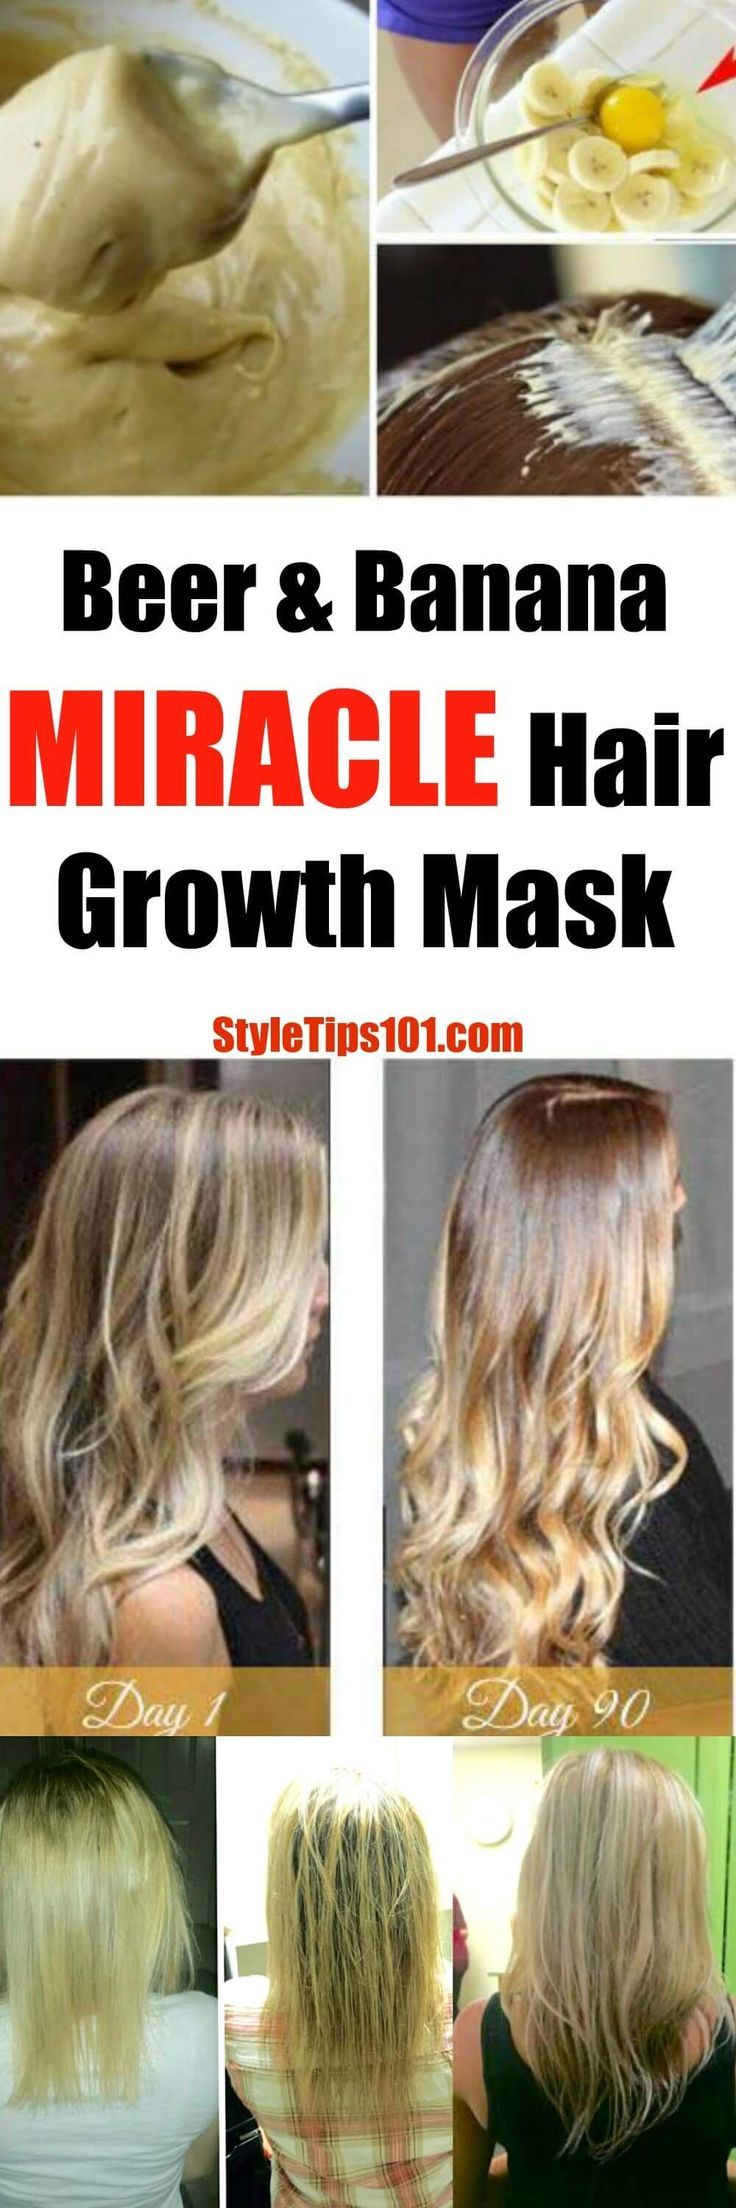 This DIY hair growth mask is seriously a MIRACLE in a bowl! Made with honey, banana, beer, and egg yolk, it will promote fast and healthy hair growth! via @styletips1o1